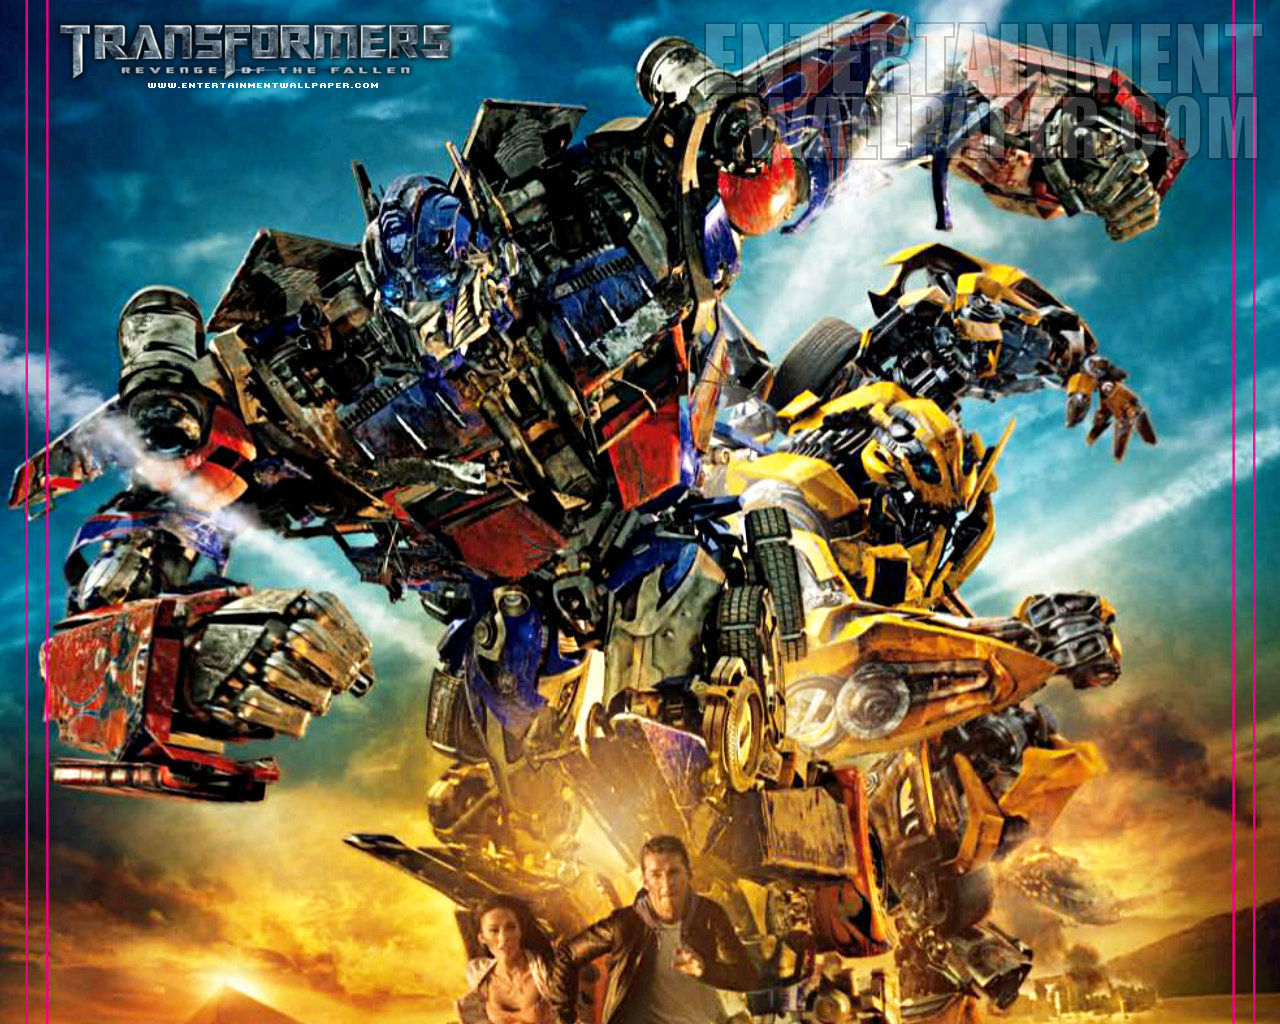 Imagenes De Transformers: HD Desktop Wallpapers: Transformers Wallpaper, Transformer